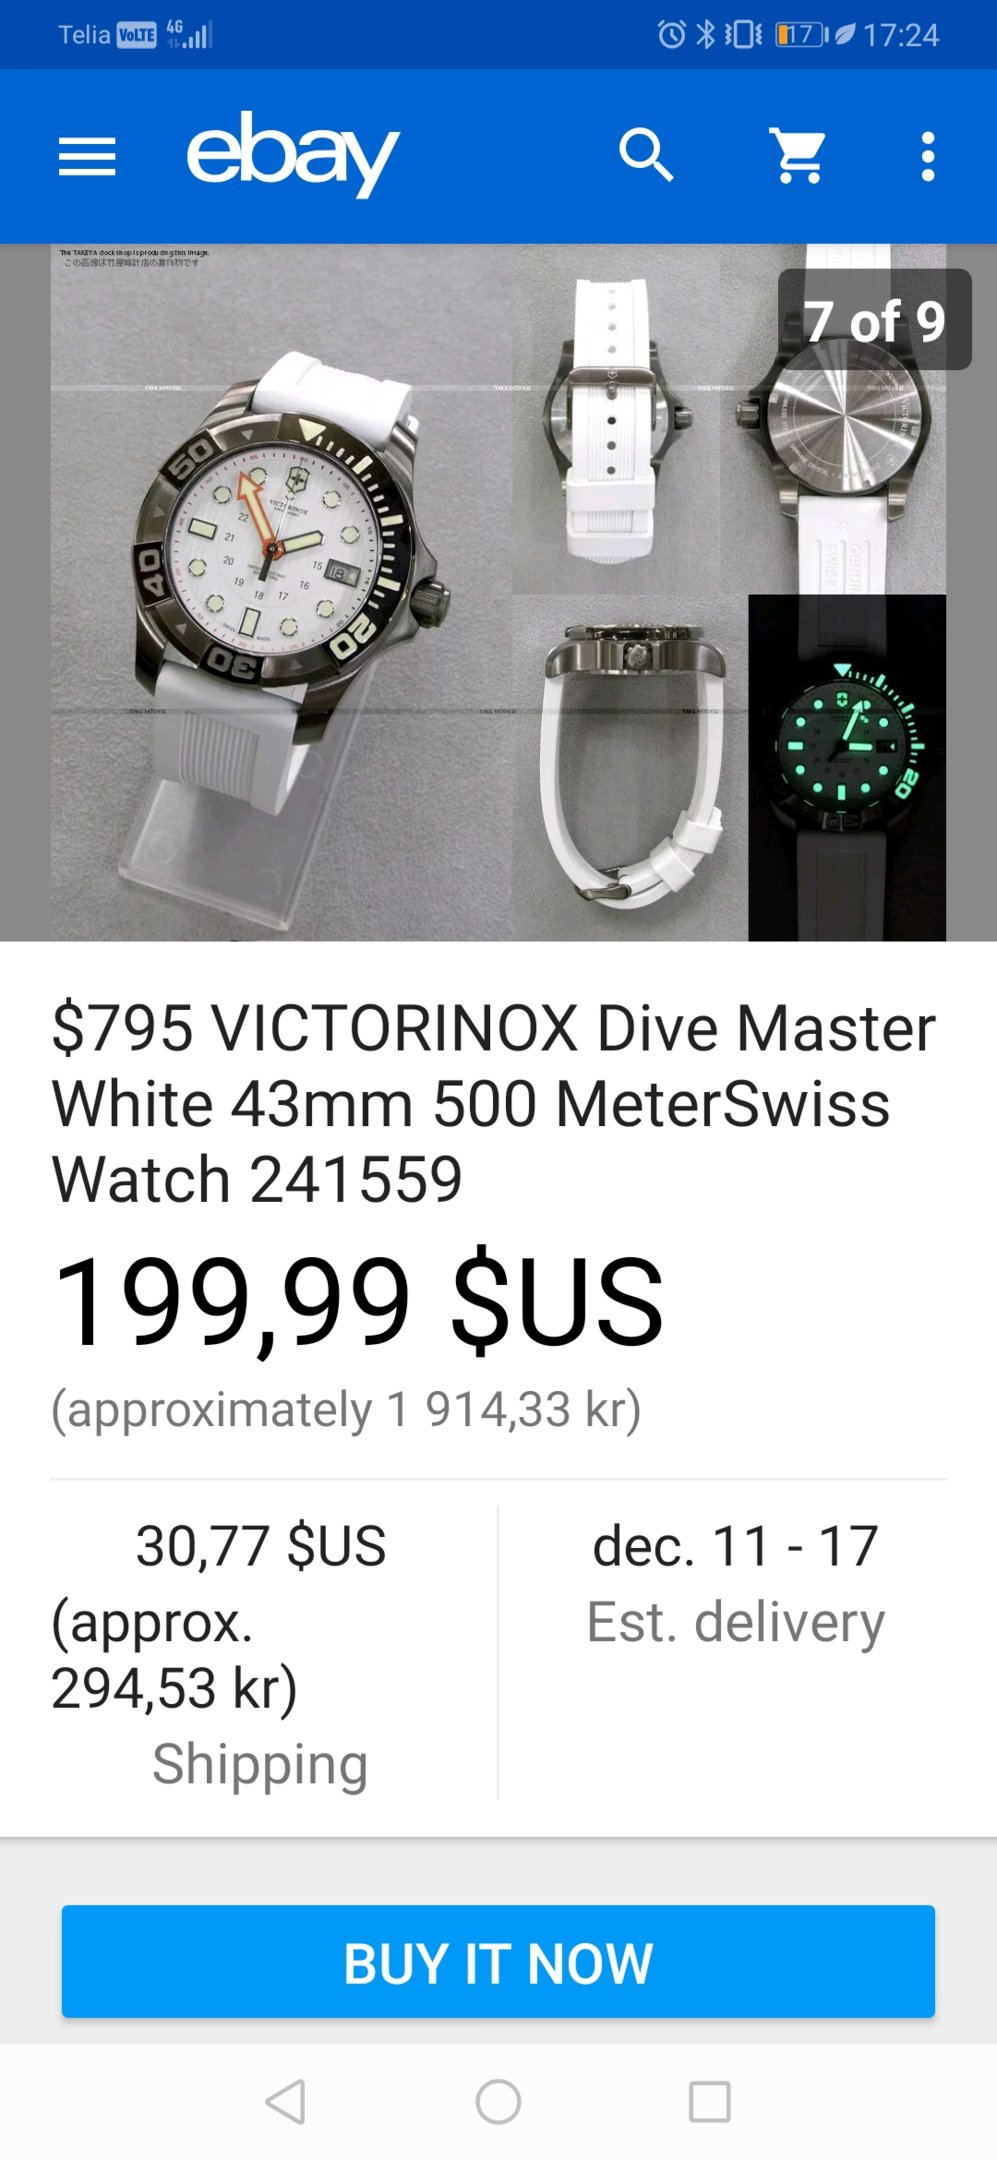 Screenshot_20191130_172425_com.ebay.mobile.